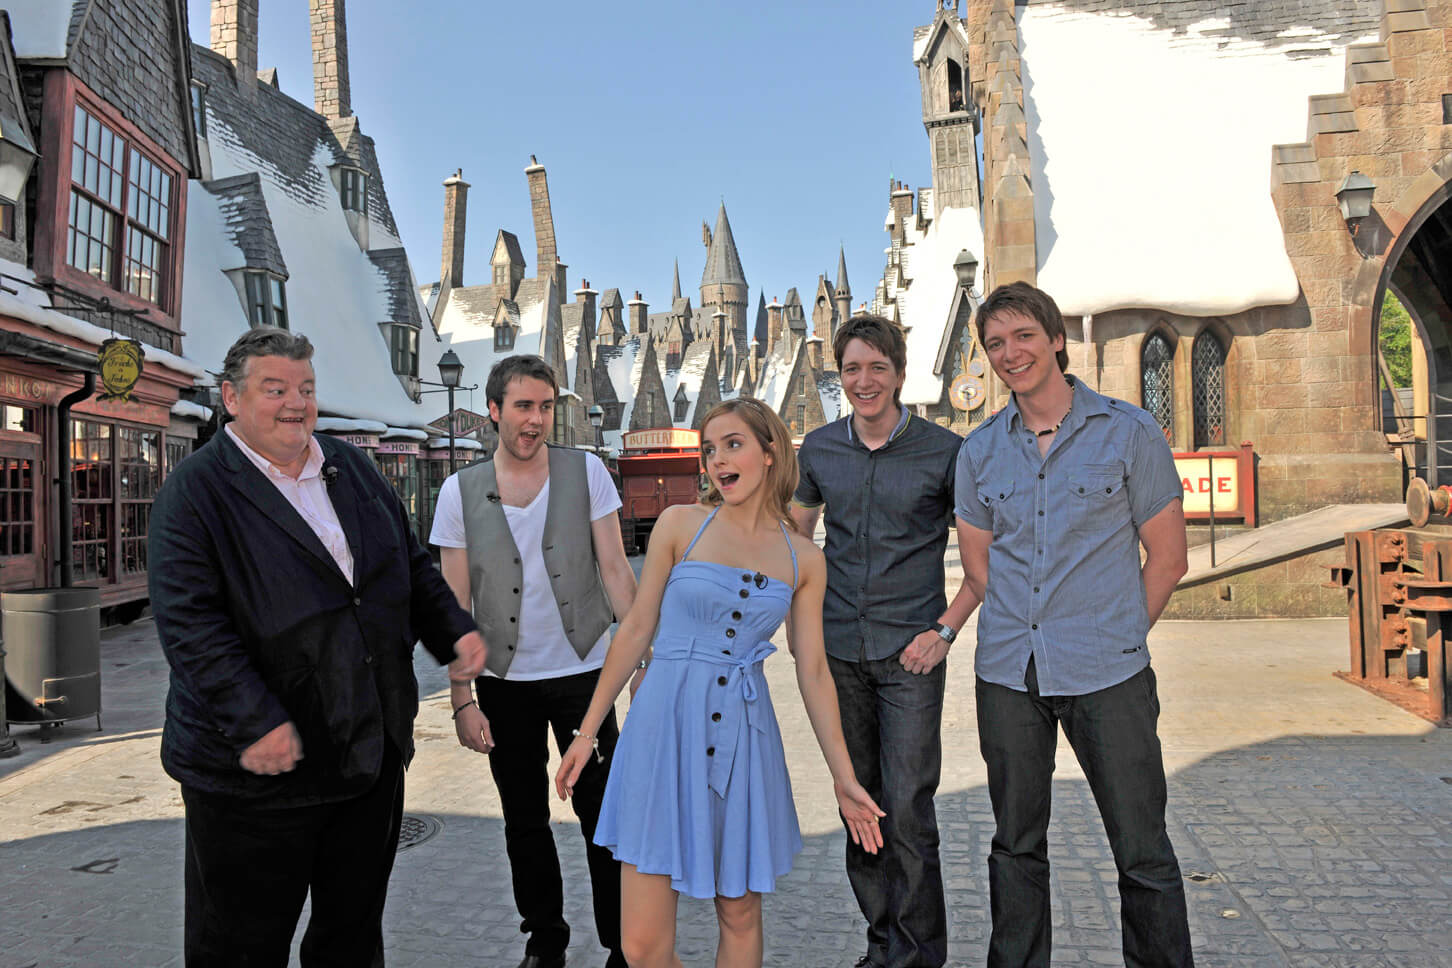 Emma watson and other harry potter stars visit the wizarding world at